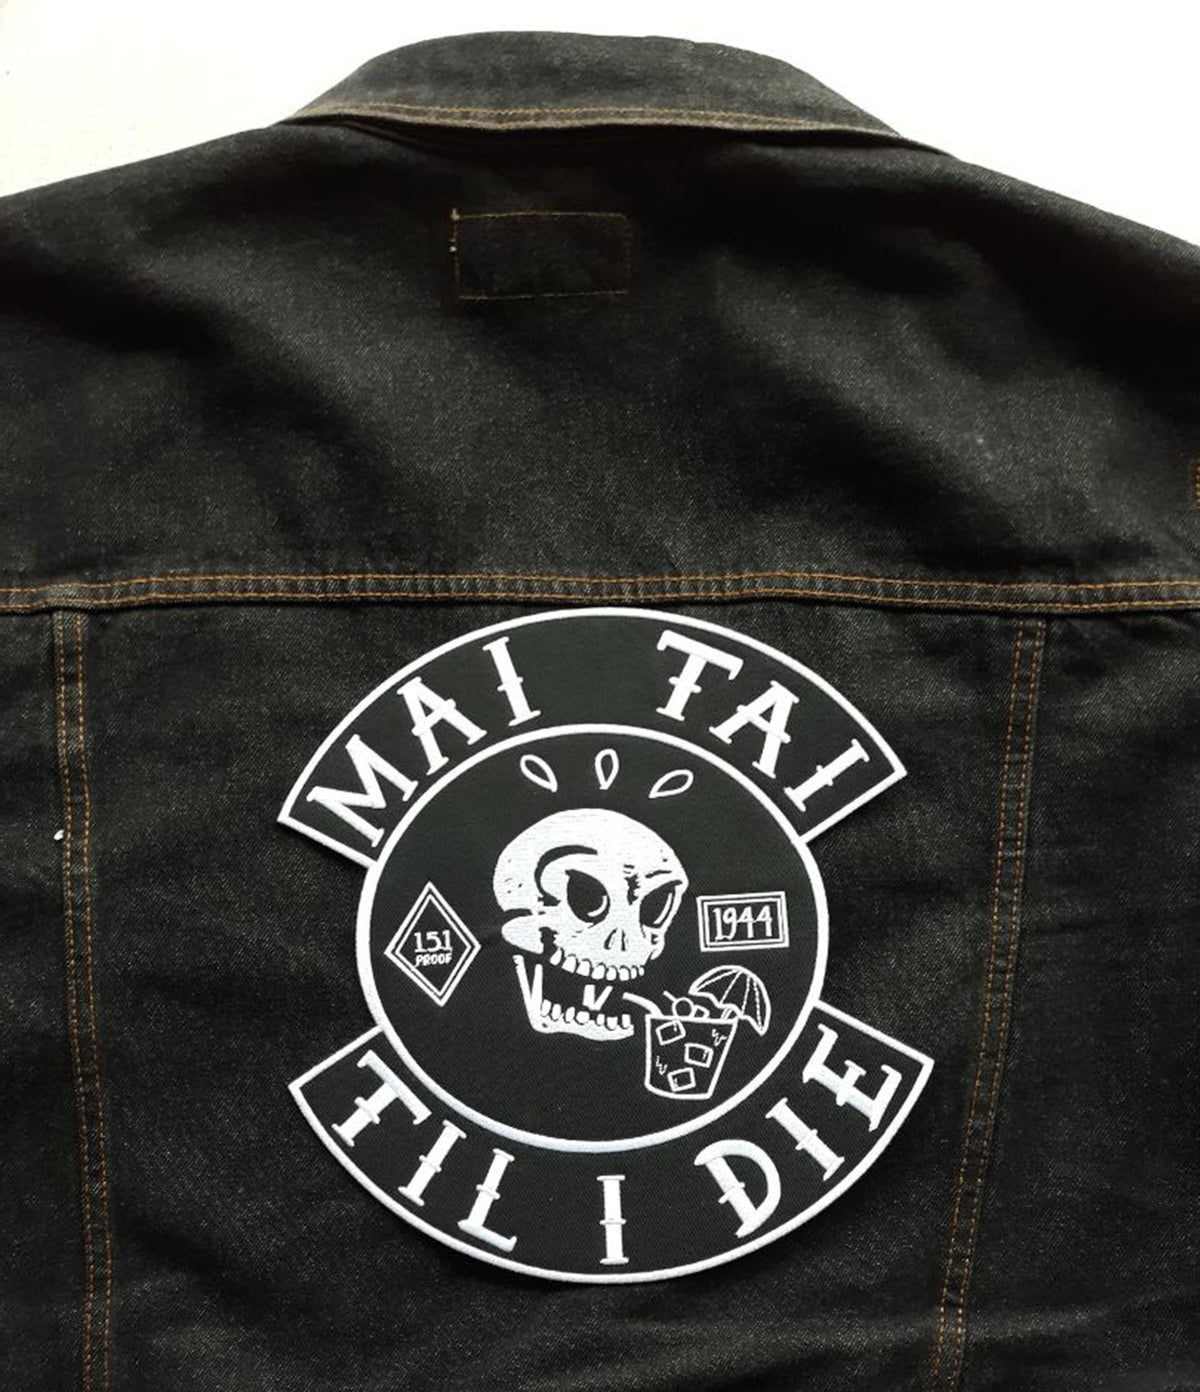 "MAI TAI TIL I DIE Large 10"" Embroidered Back Patch!"